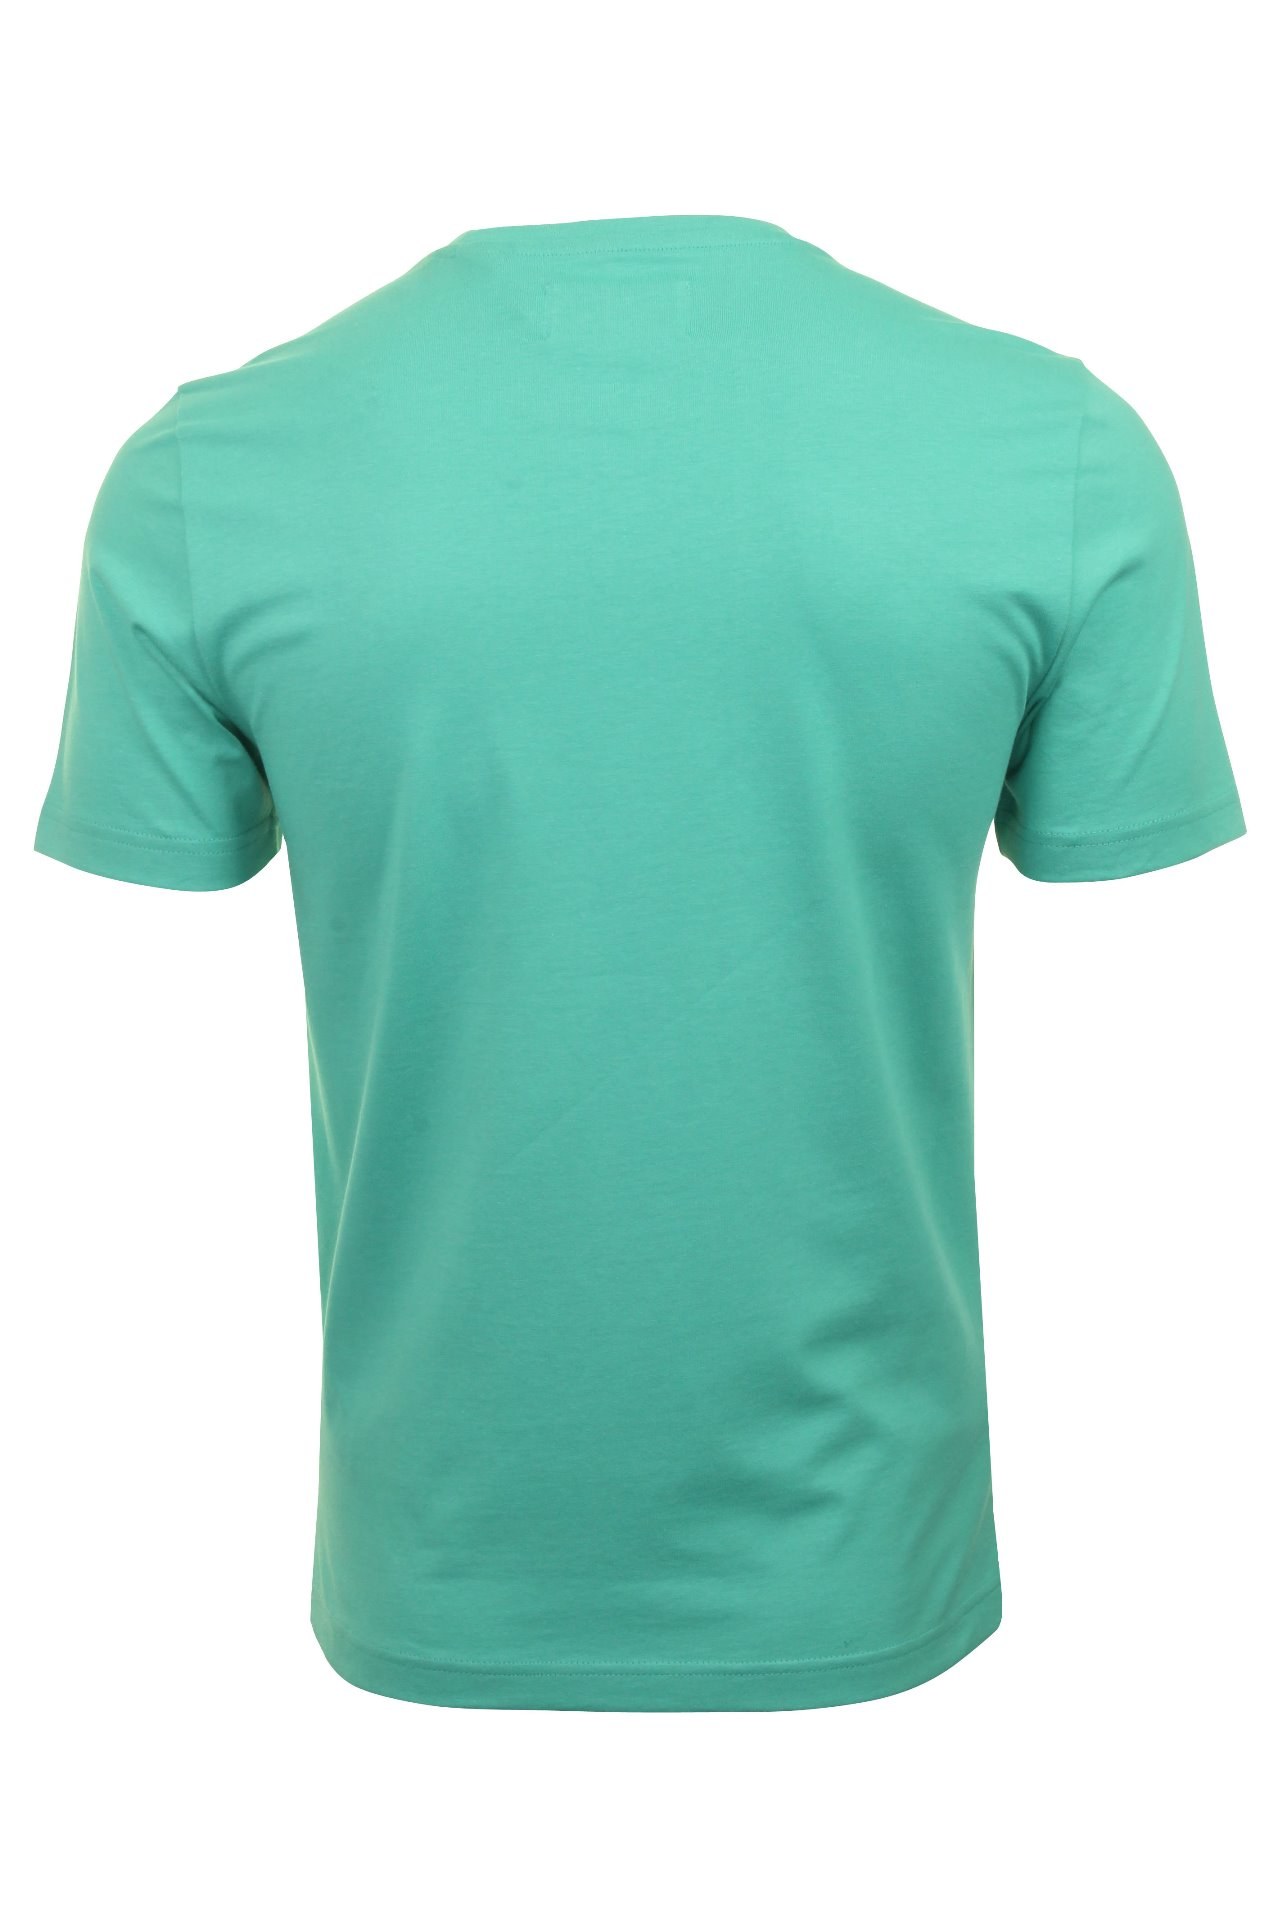 Original-Penguin-Mens-T-Shirt-039-Pin-Point-Embroidered-039-Short-Sleeved thumbnail 5